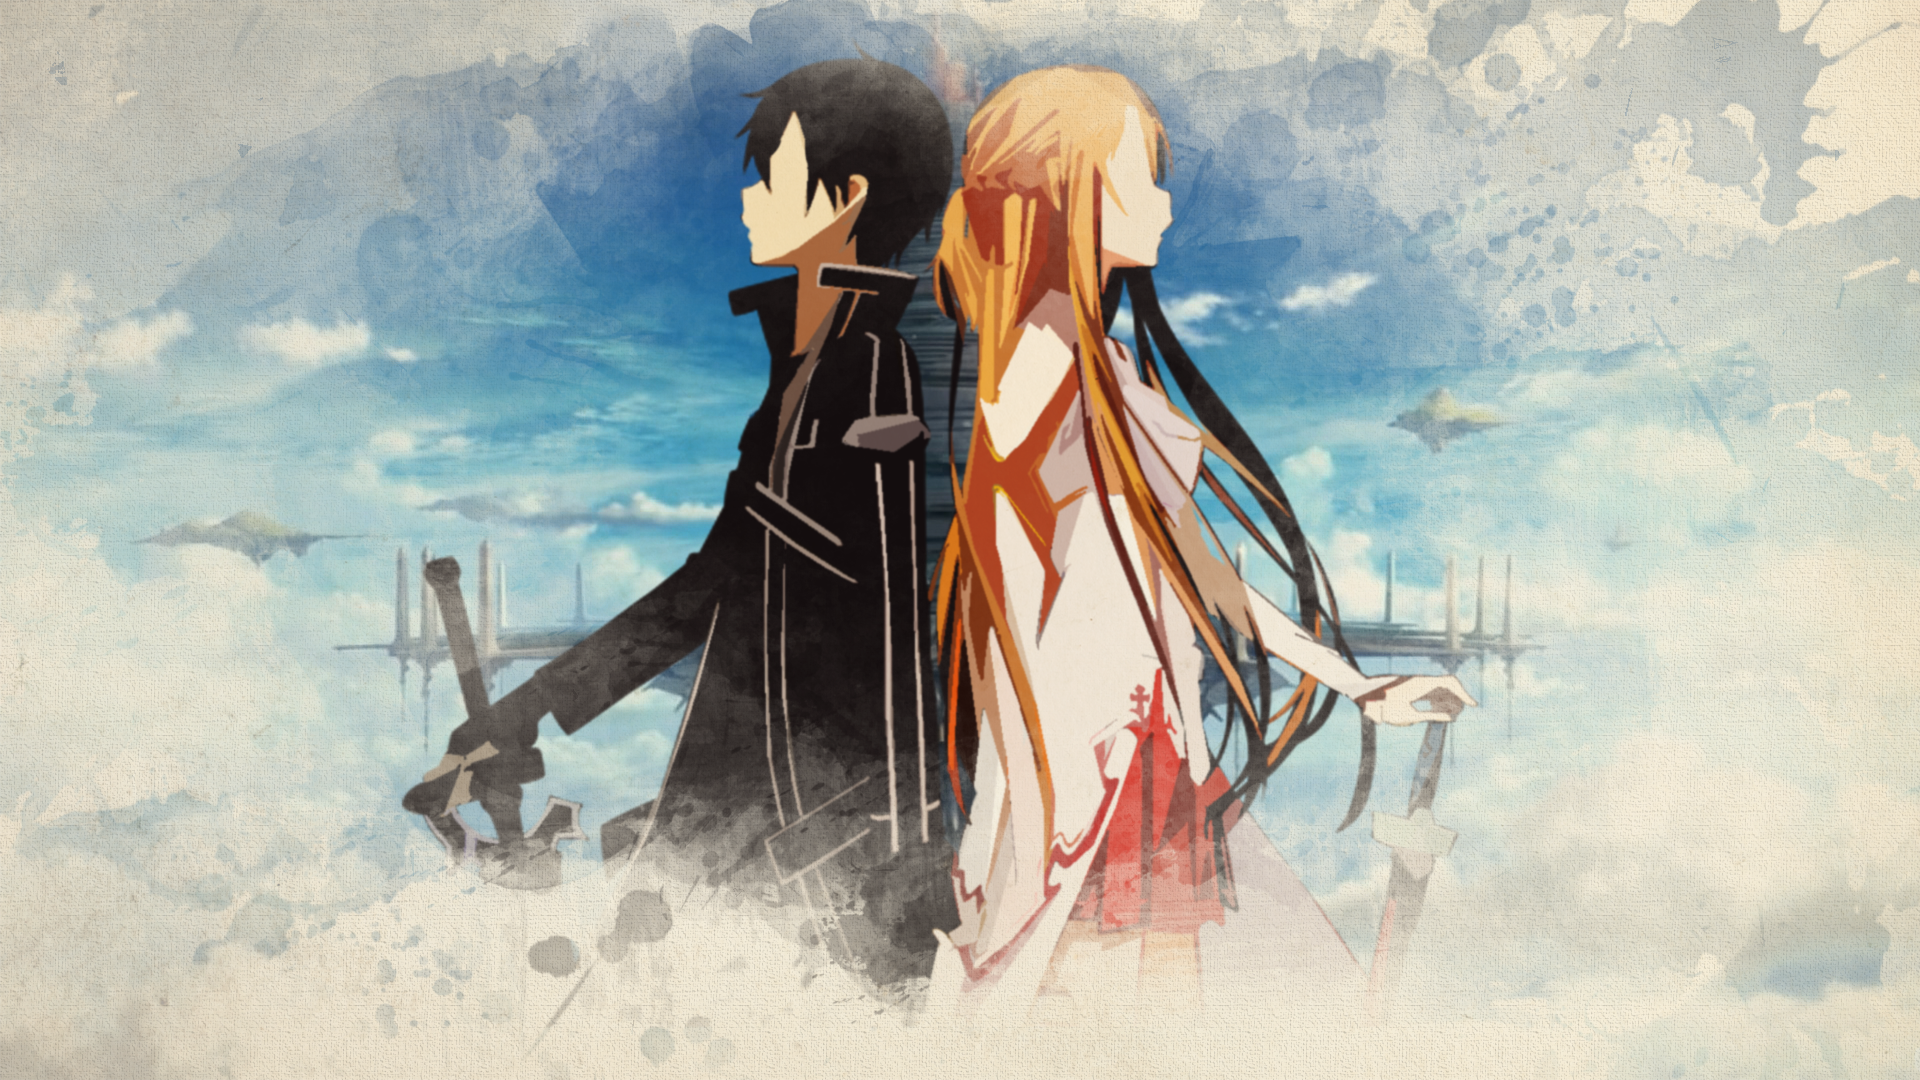 Free Download Kirito And Asuna Wallpaper By Bluebeasts Watch Fan Art Wallpaper 1920x1080 For Your Desktop Mobile Tablet Explore 44 Kirito Wallpaper Download Sao Kirito Wallpaper Hd Kirito Iphone